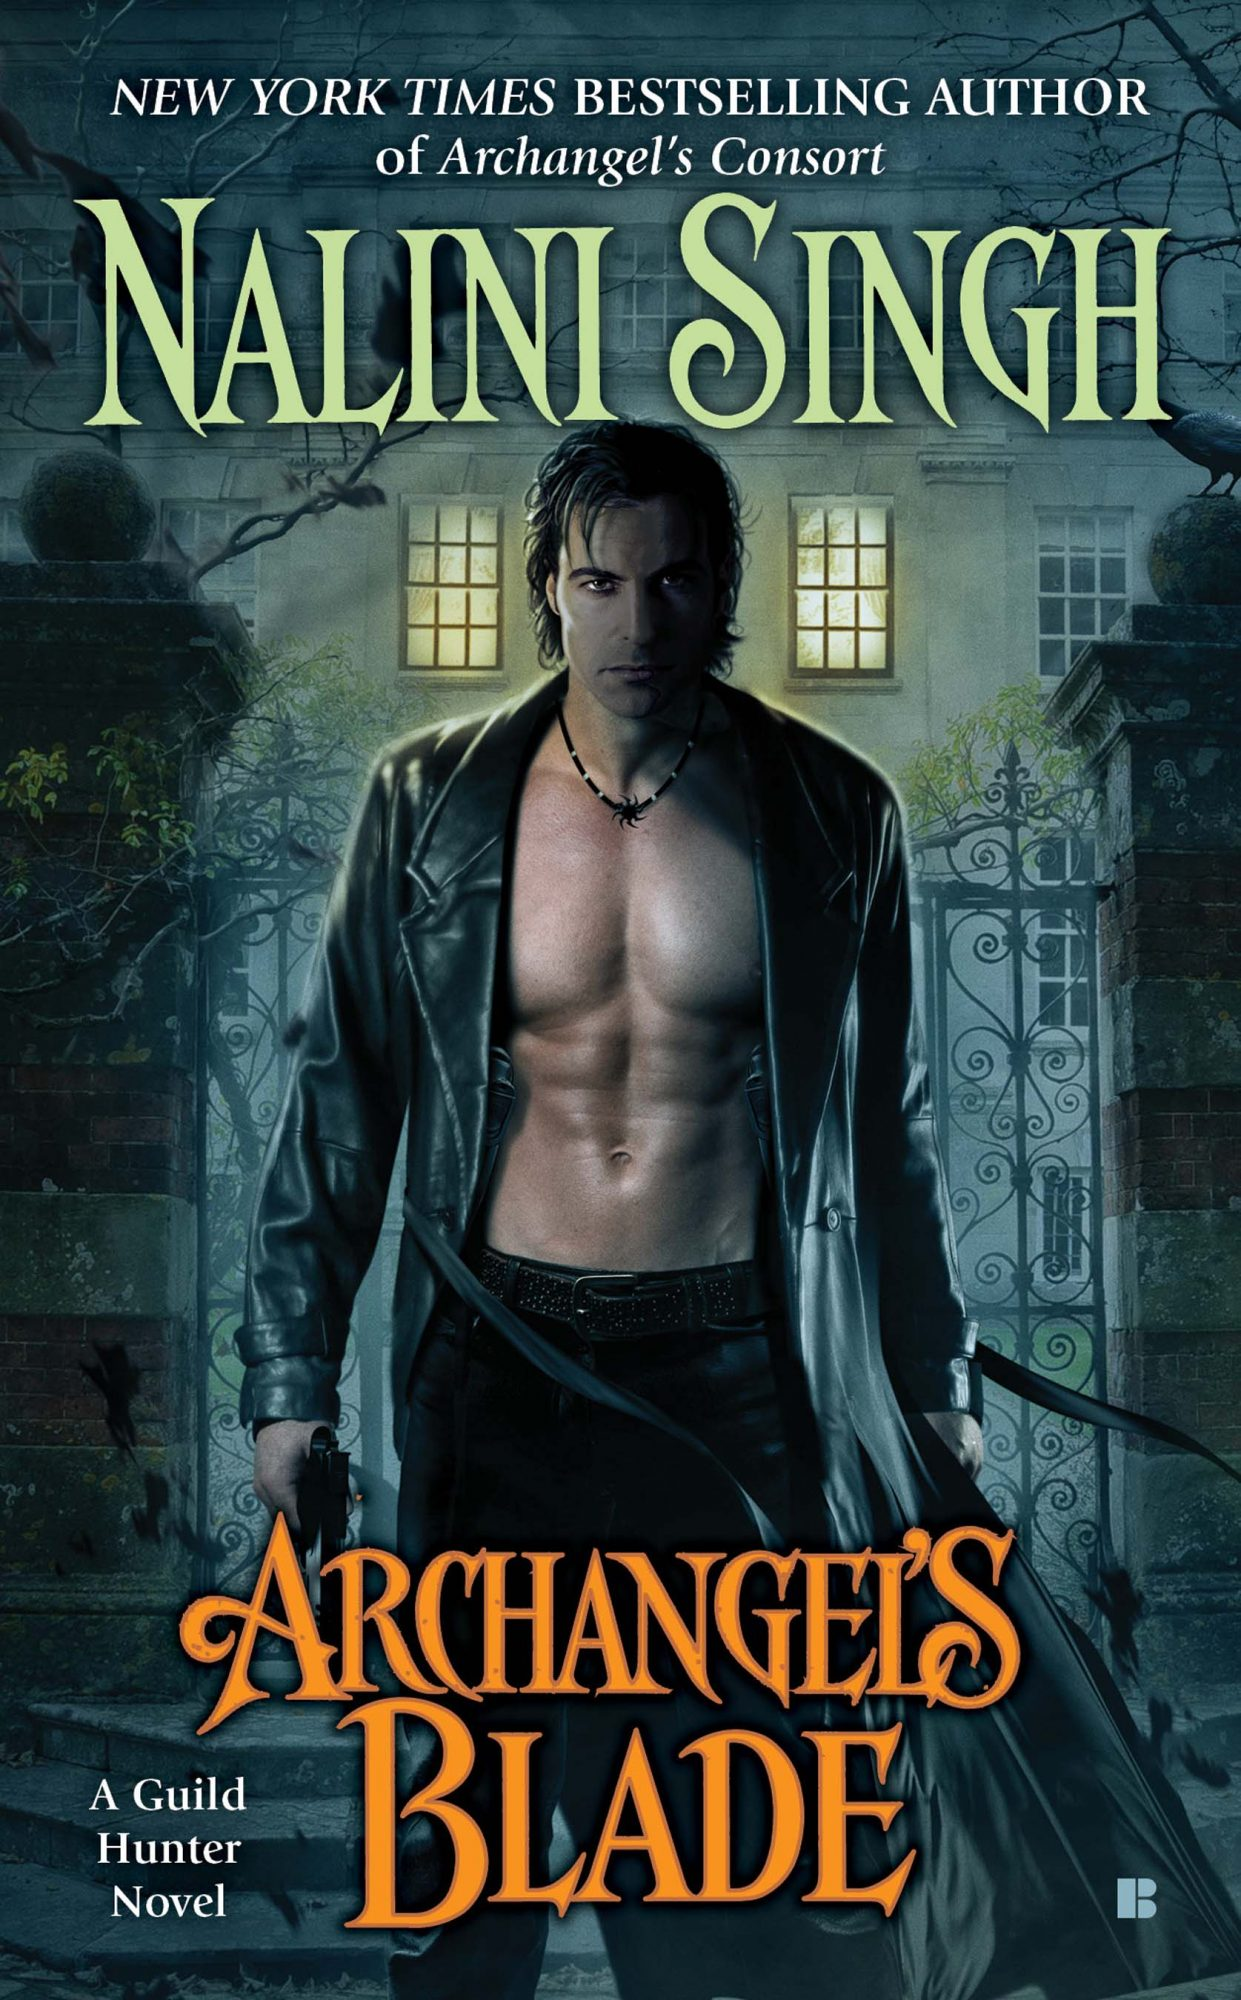 Archangel's Blade by Nalini Singh (2011)